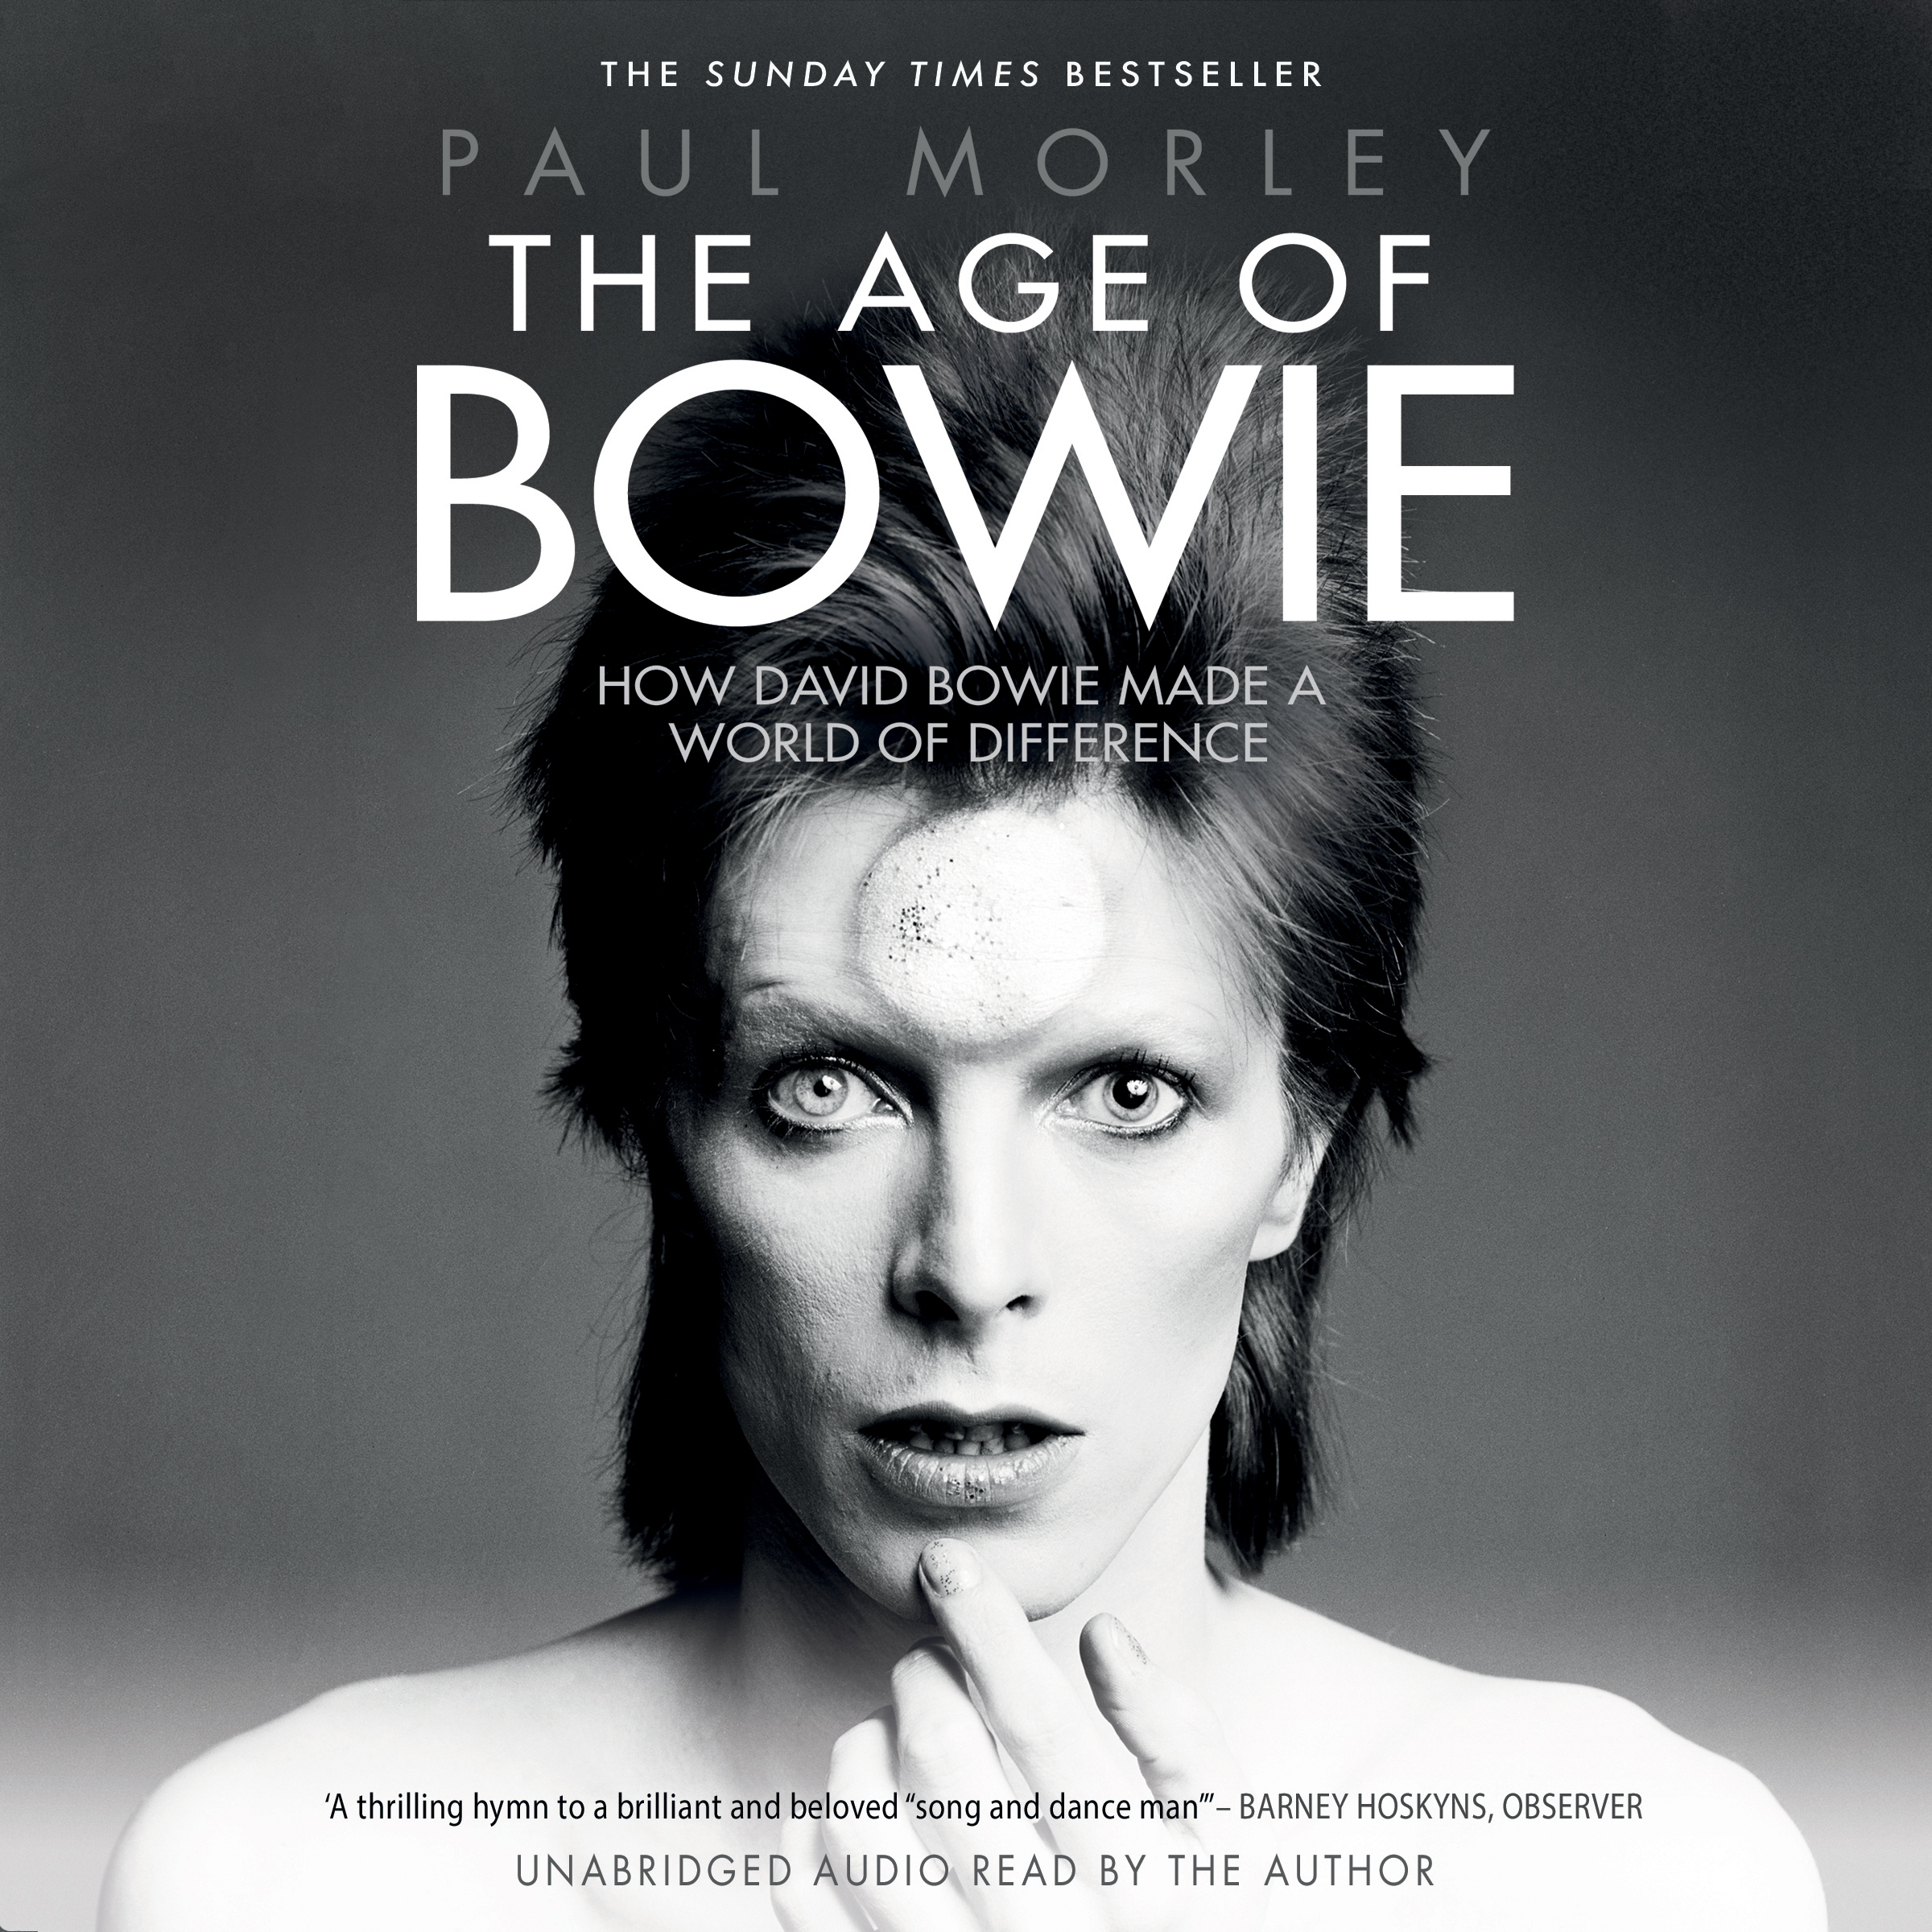 The age of bowie 9781471163258 hr